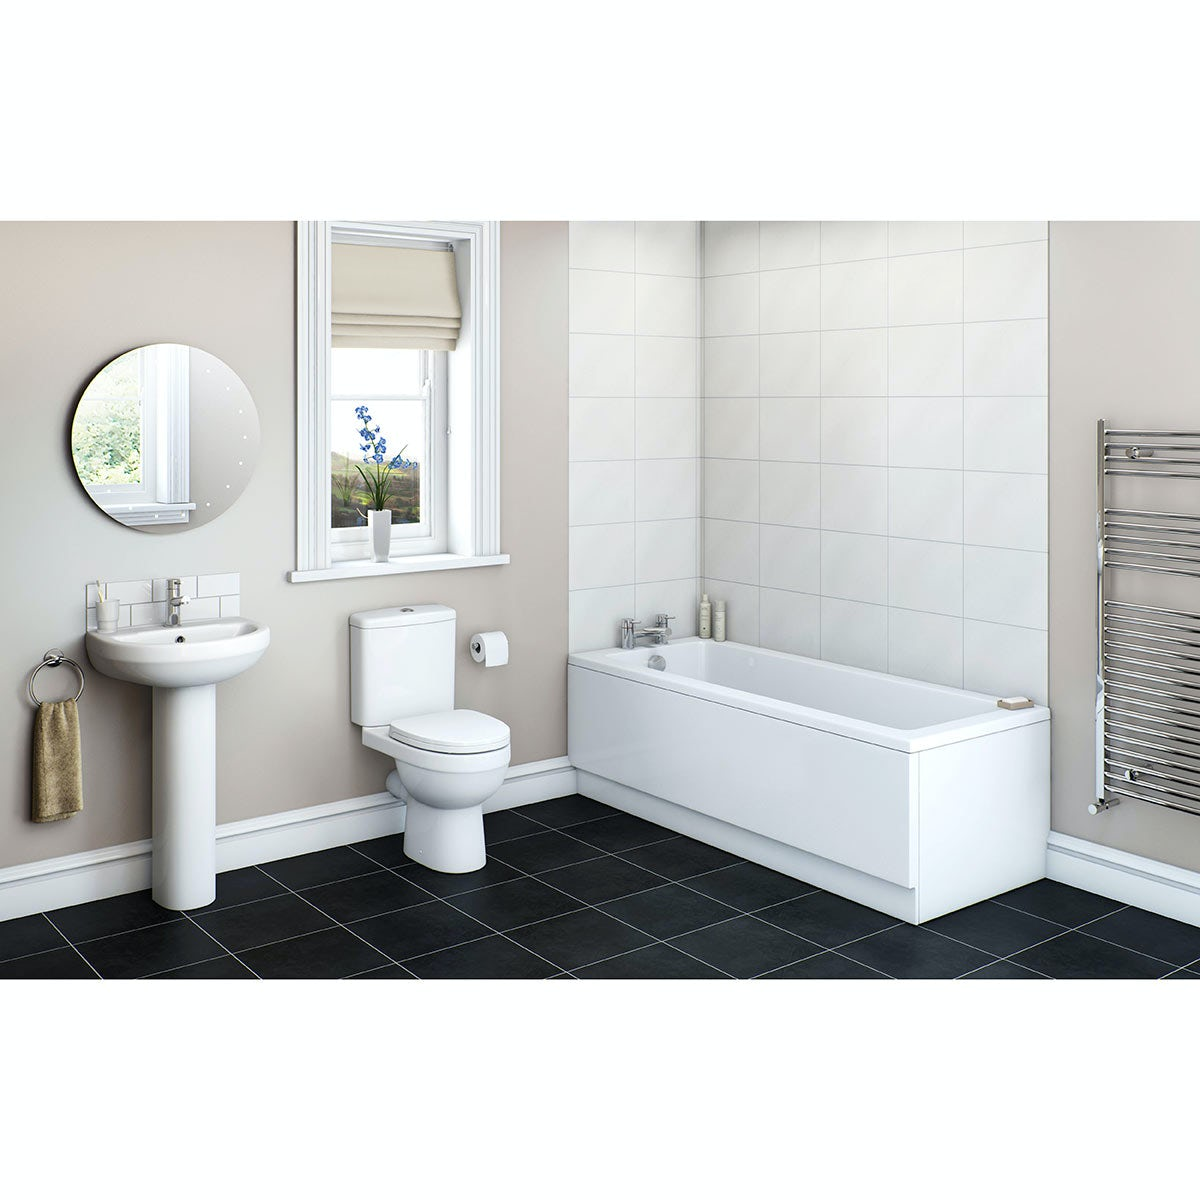 Orchard Eden bathroom suite with straight bath 1700 x 700